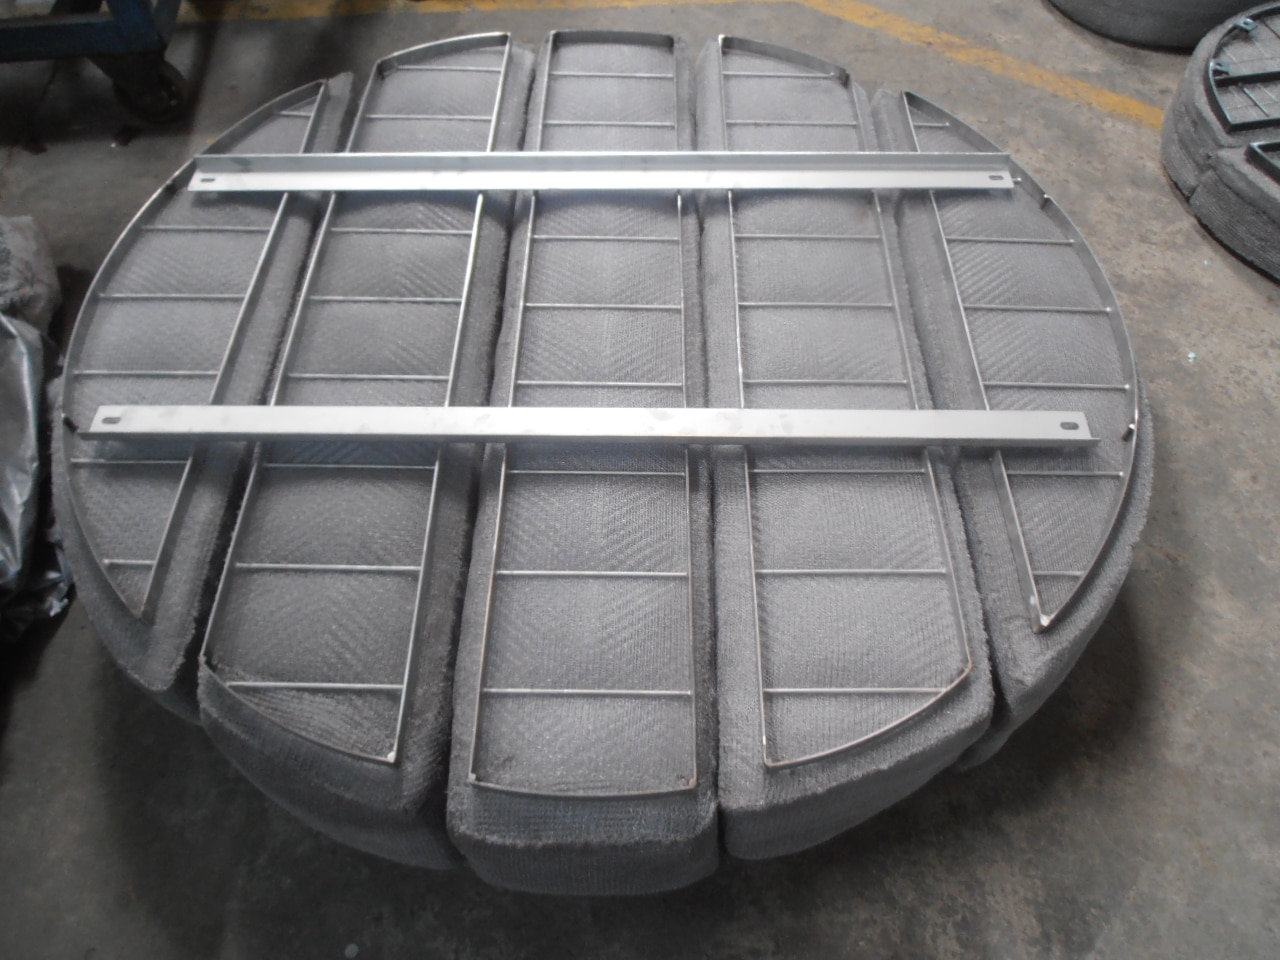 There are mainly two types of mist eliminators available: wire-mesh demisters and vane-type separators. In addition, non-irrigated packed bed stages can also work as mist eliminators. The efficiency of mist eliminators is expressed by the rate of separation for a special droplet size. Finepac offers high efficient Mist eliminator and fabrication in India.